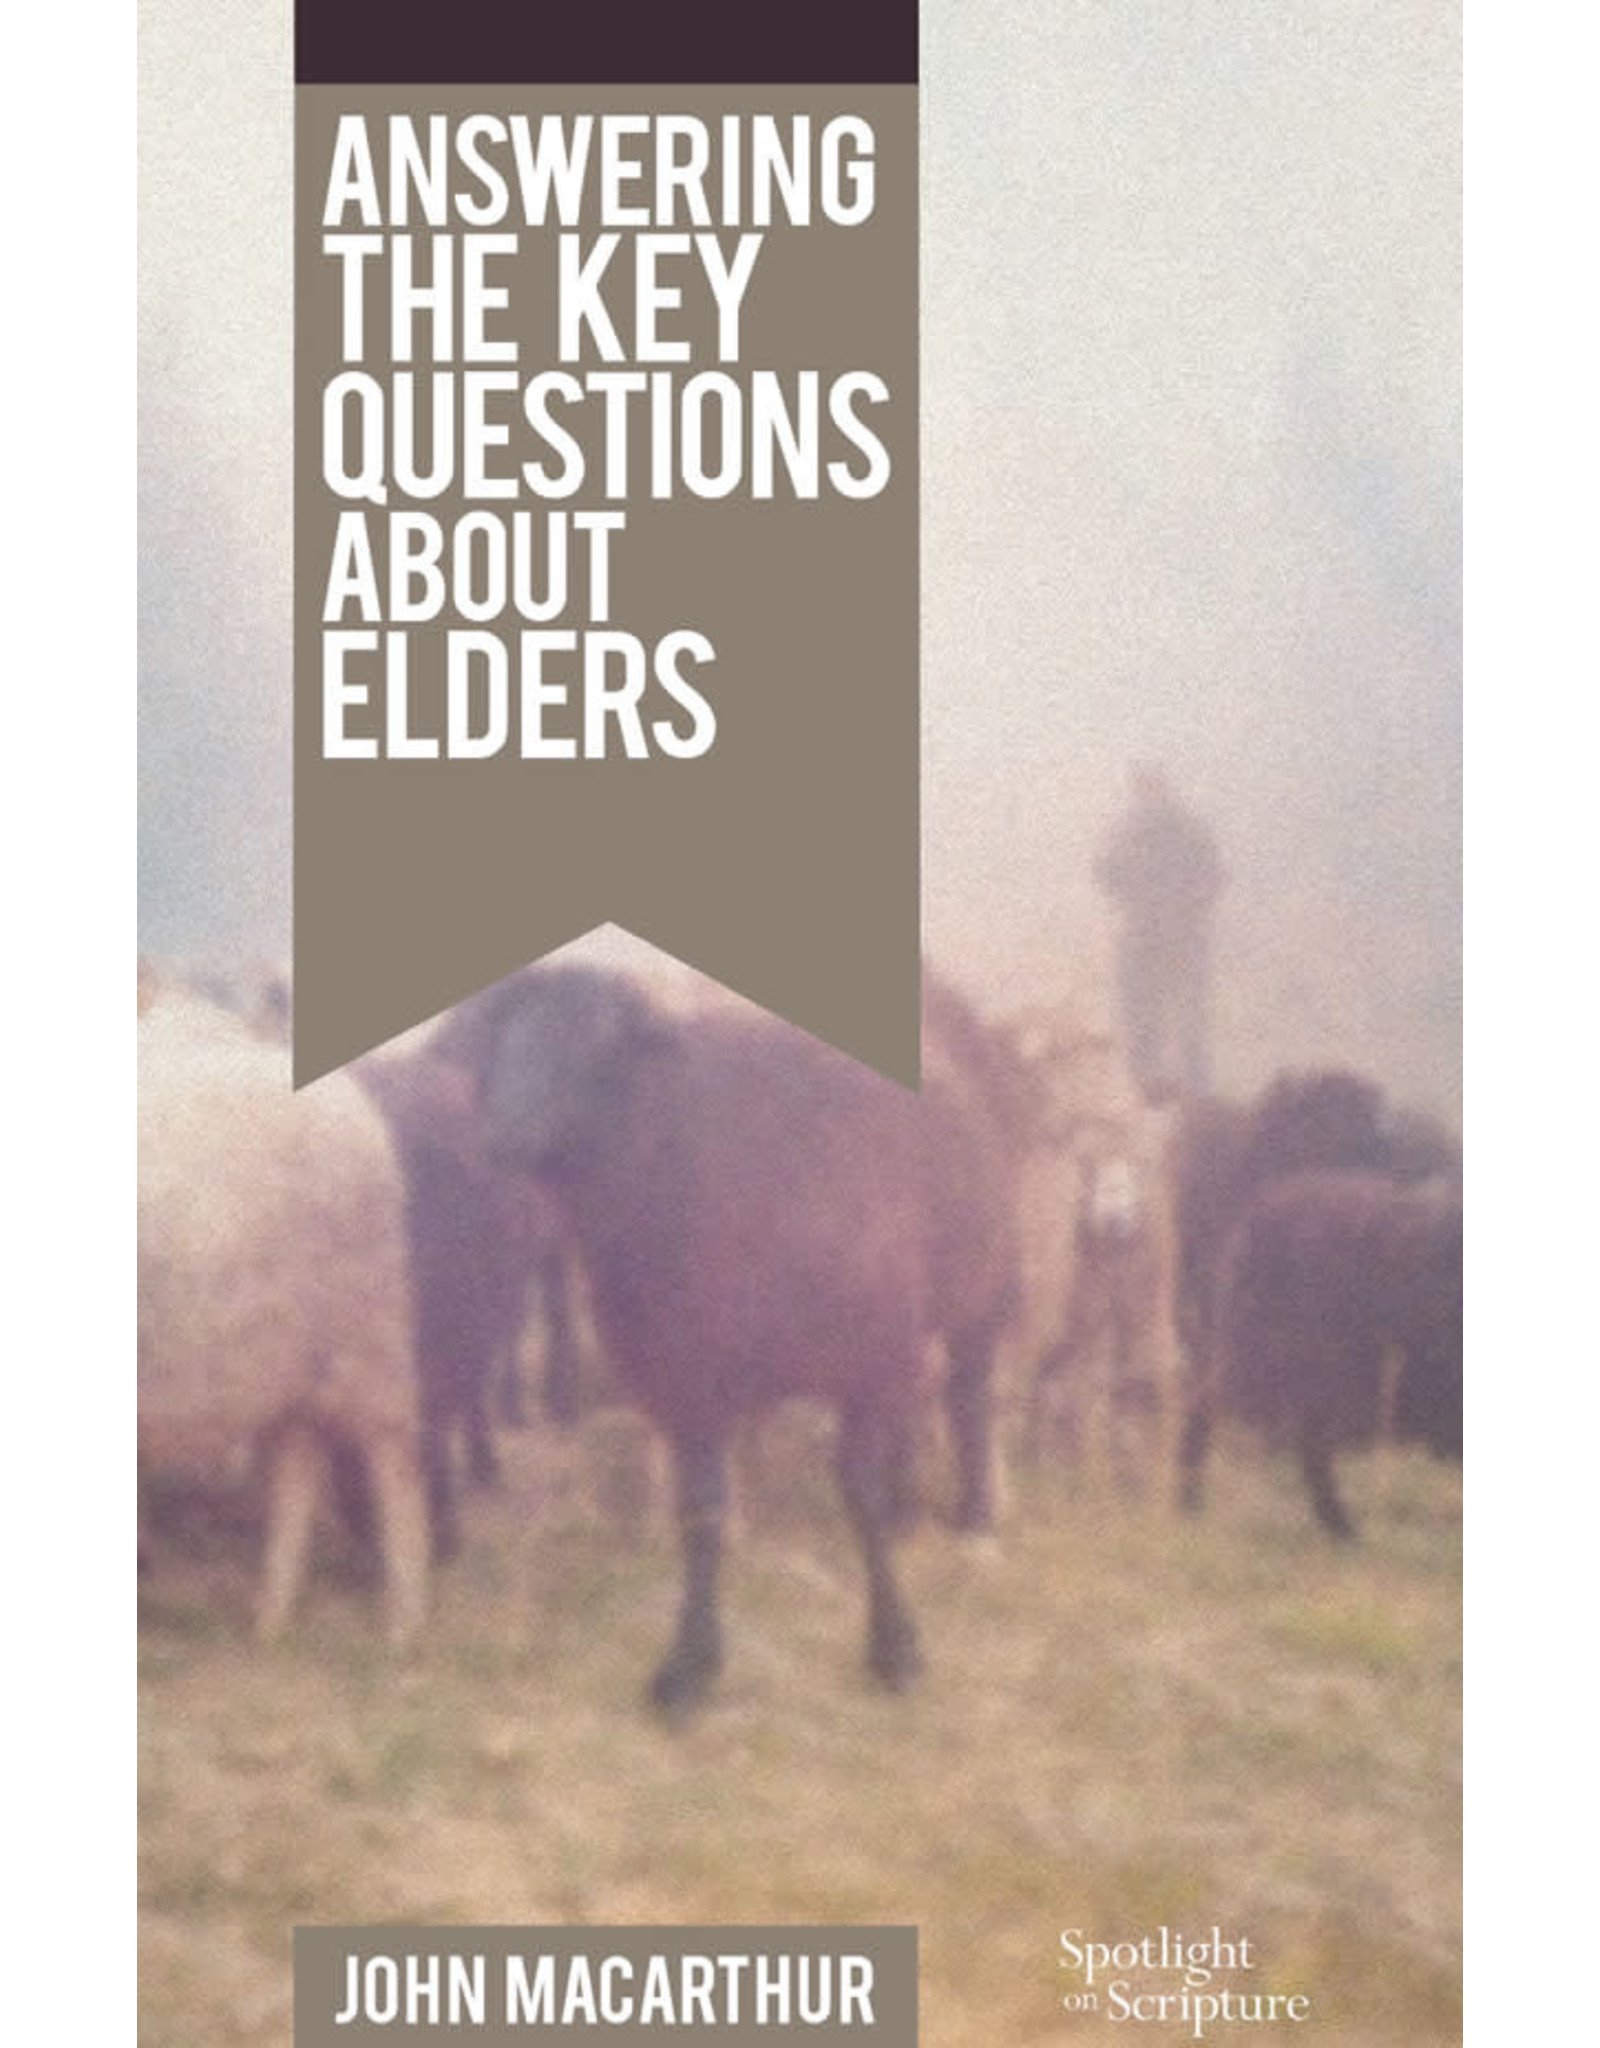 MacArthur Answering the Key Questions About Elders